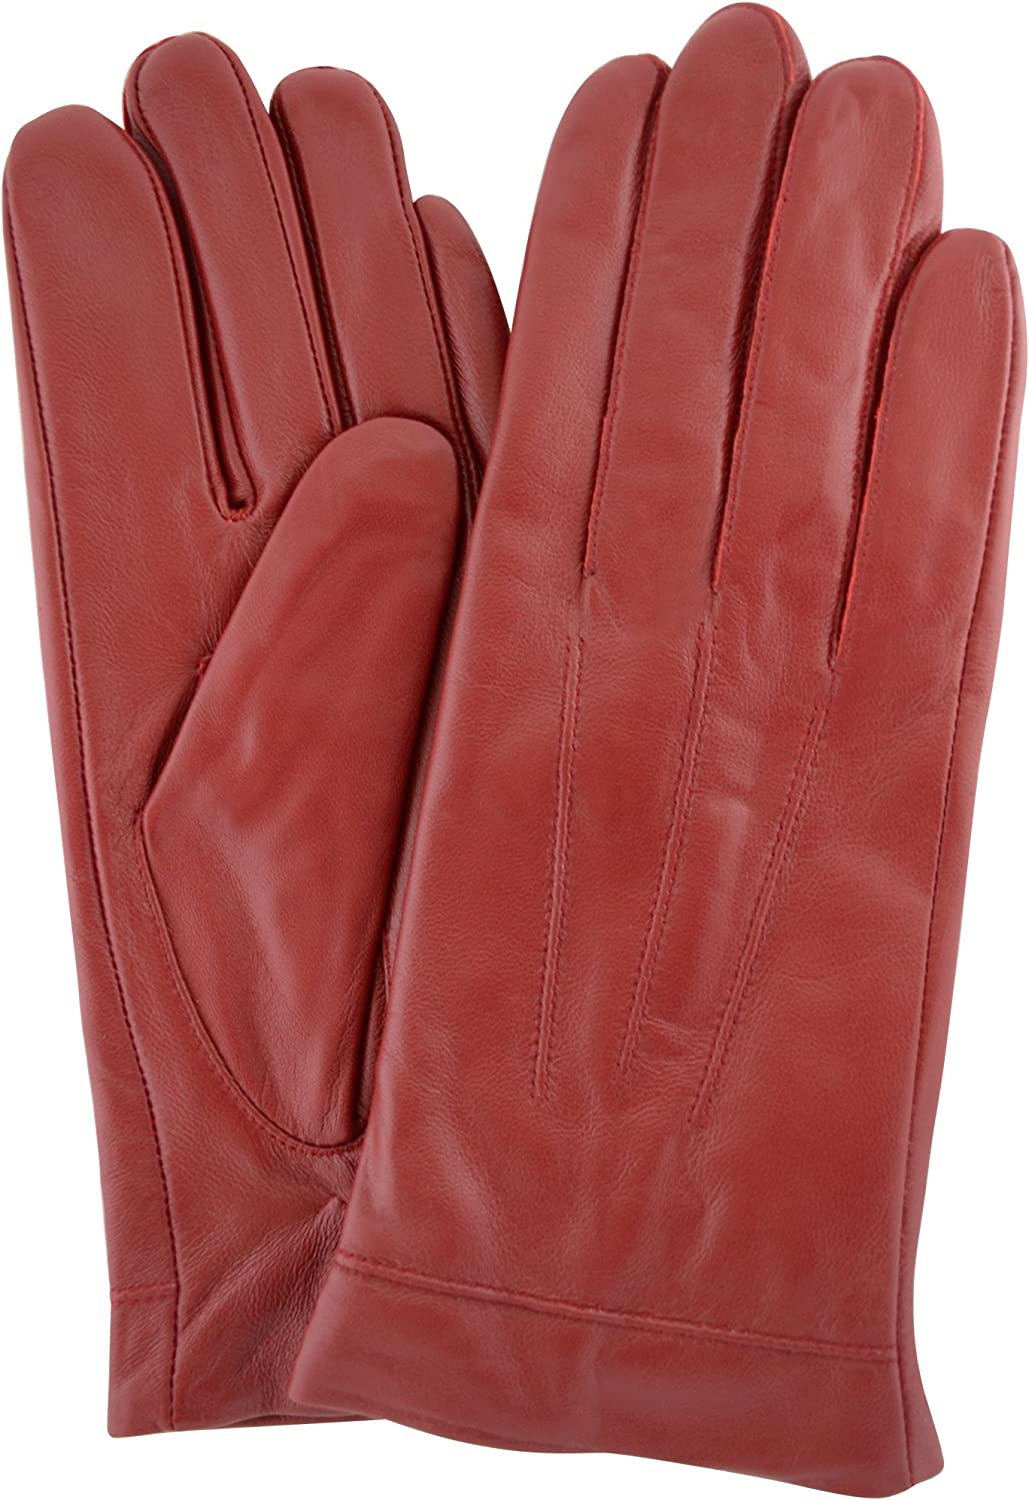 Snugrugs Butter Soft Premium Leather Glove Guantes Para Mujer (red)